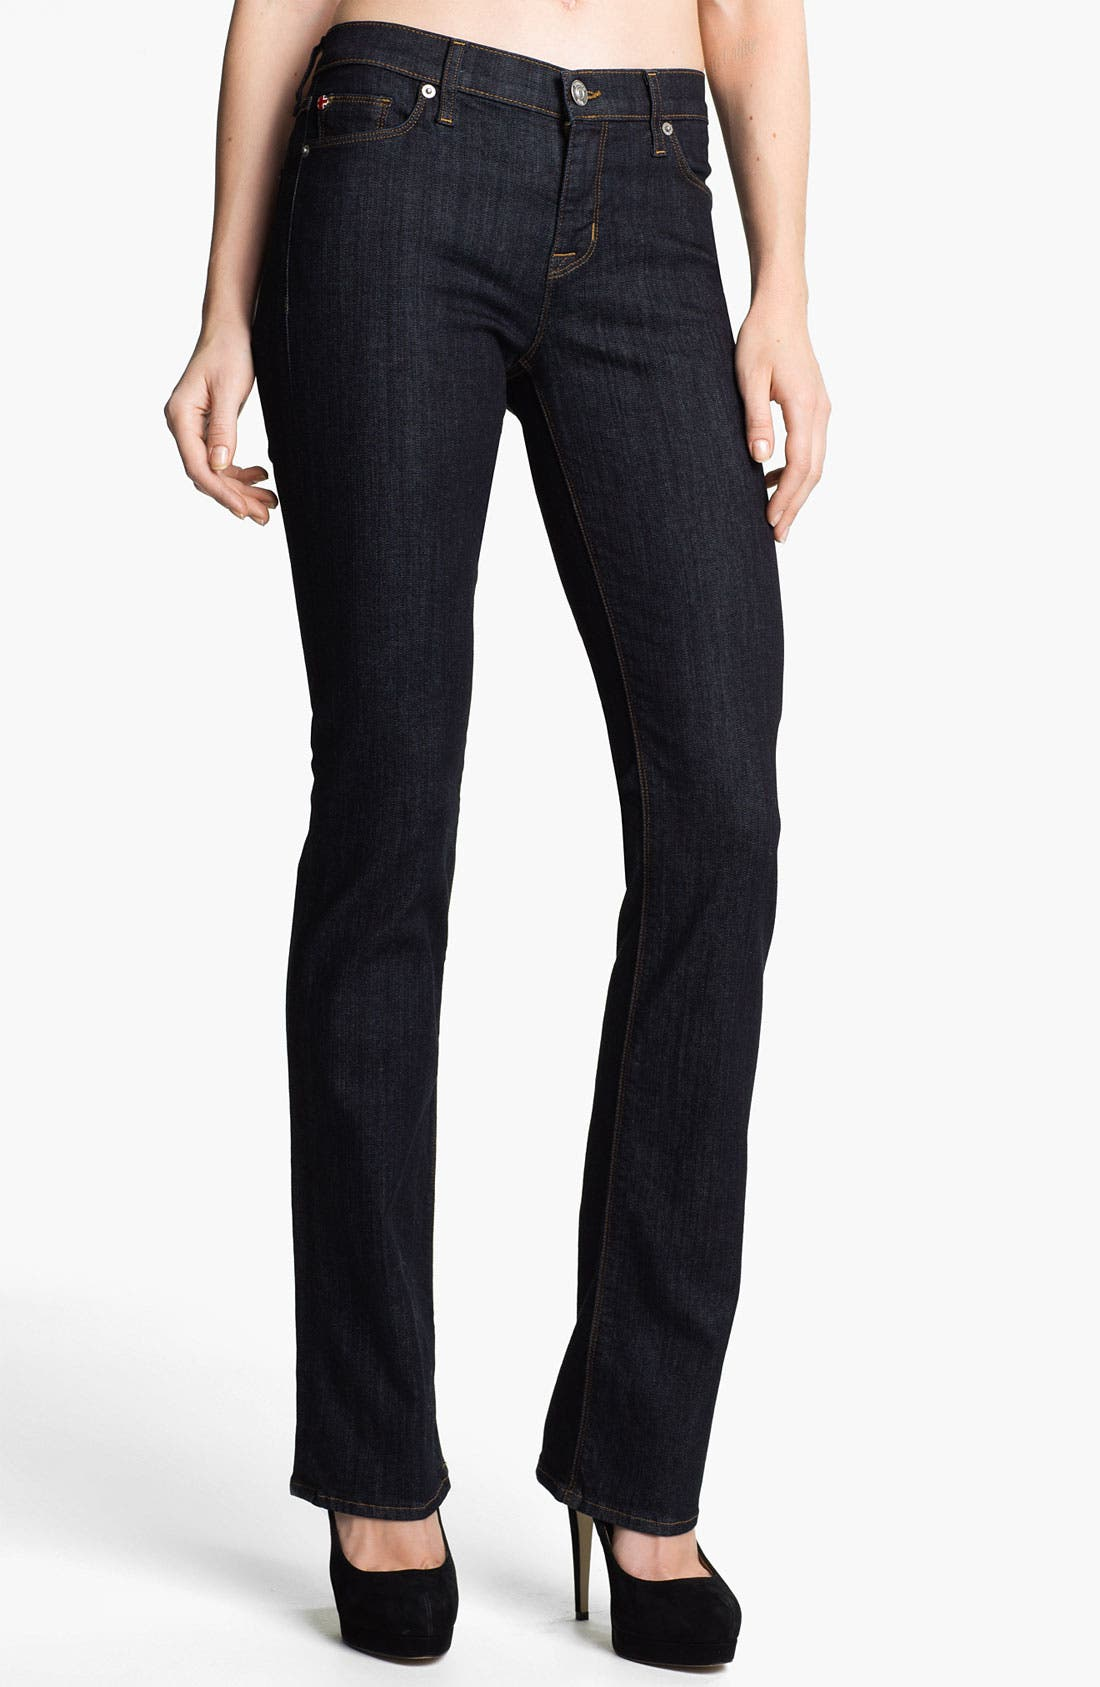 Alternate Image 1 Selected - Hudson Jeans 'Elle' Baby Bootcut Jeans (Foley)